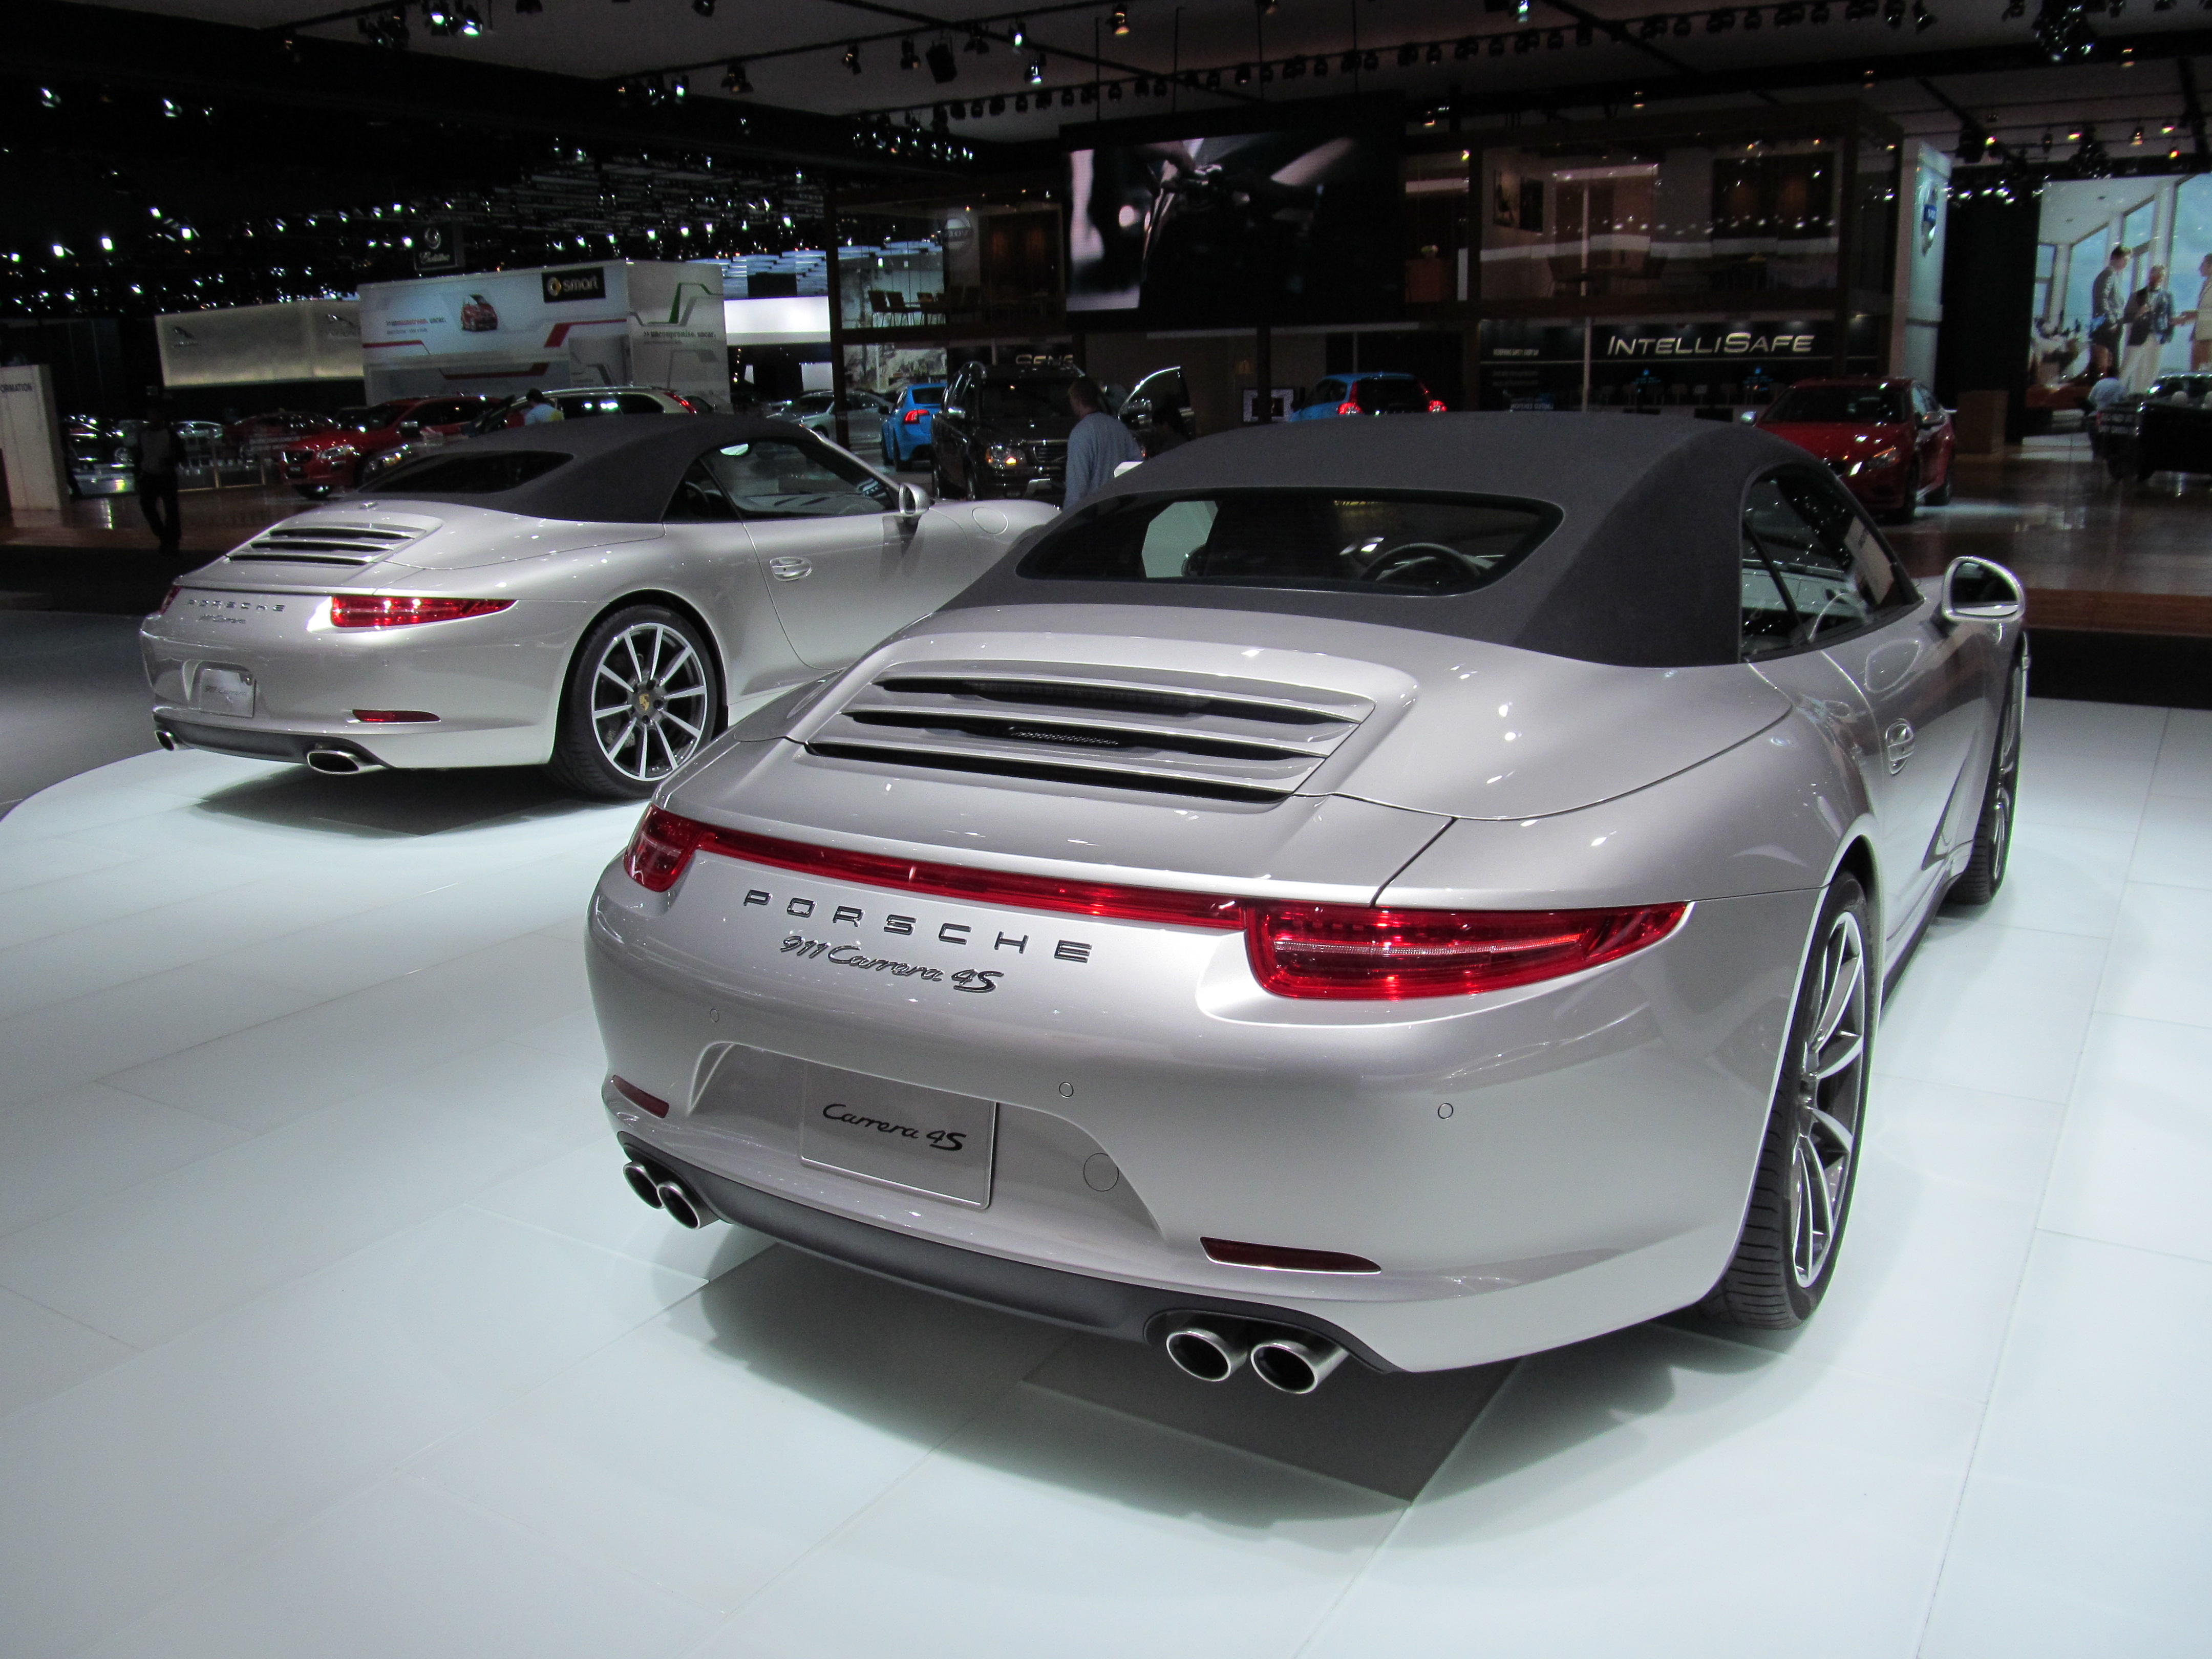 2013-porsche-911-carrera-4s-cabriolet-at-naias-2013-by-boss-mustang